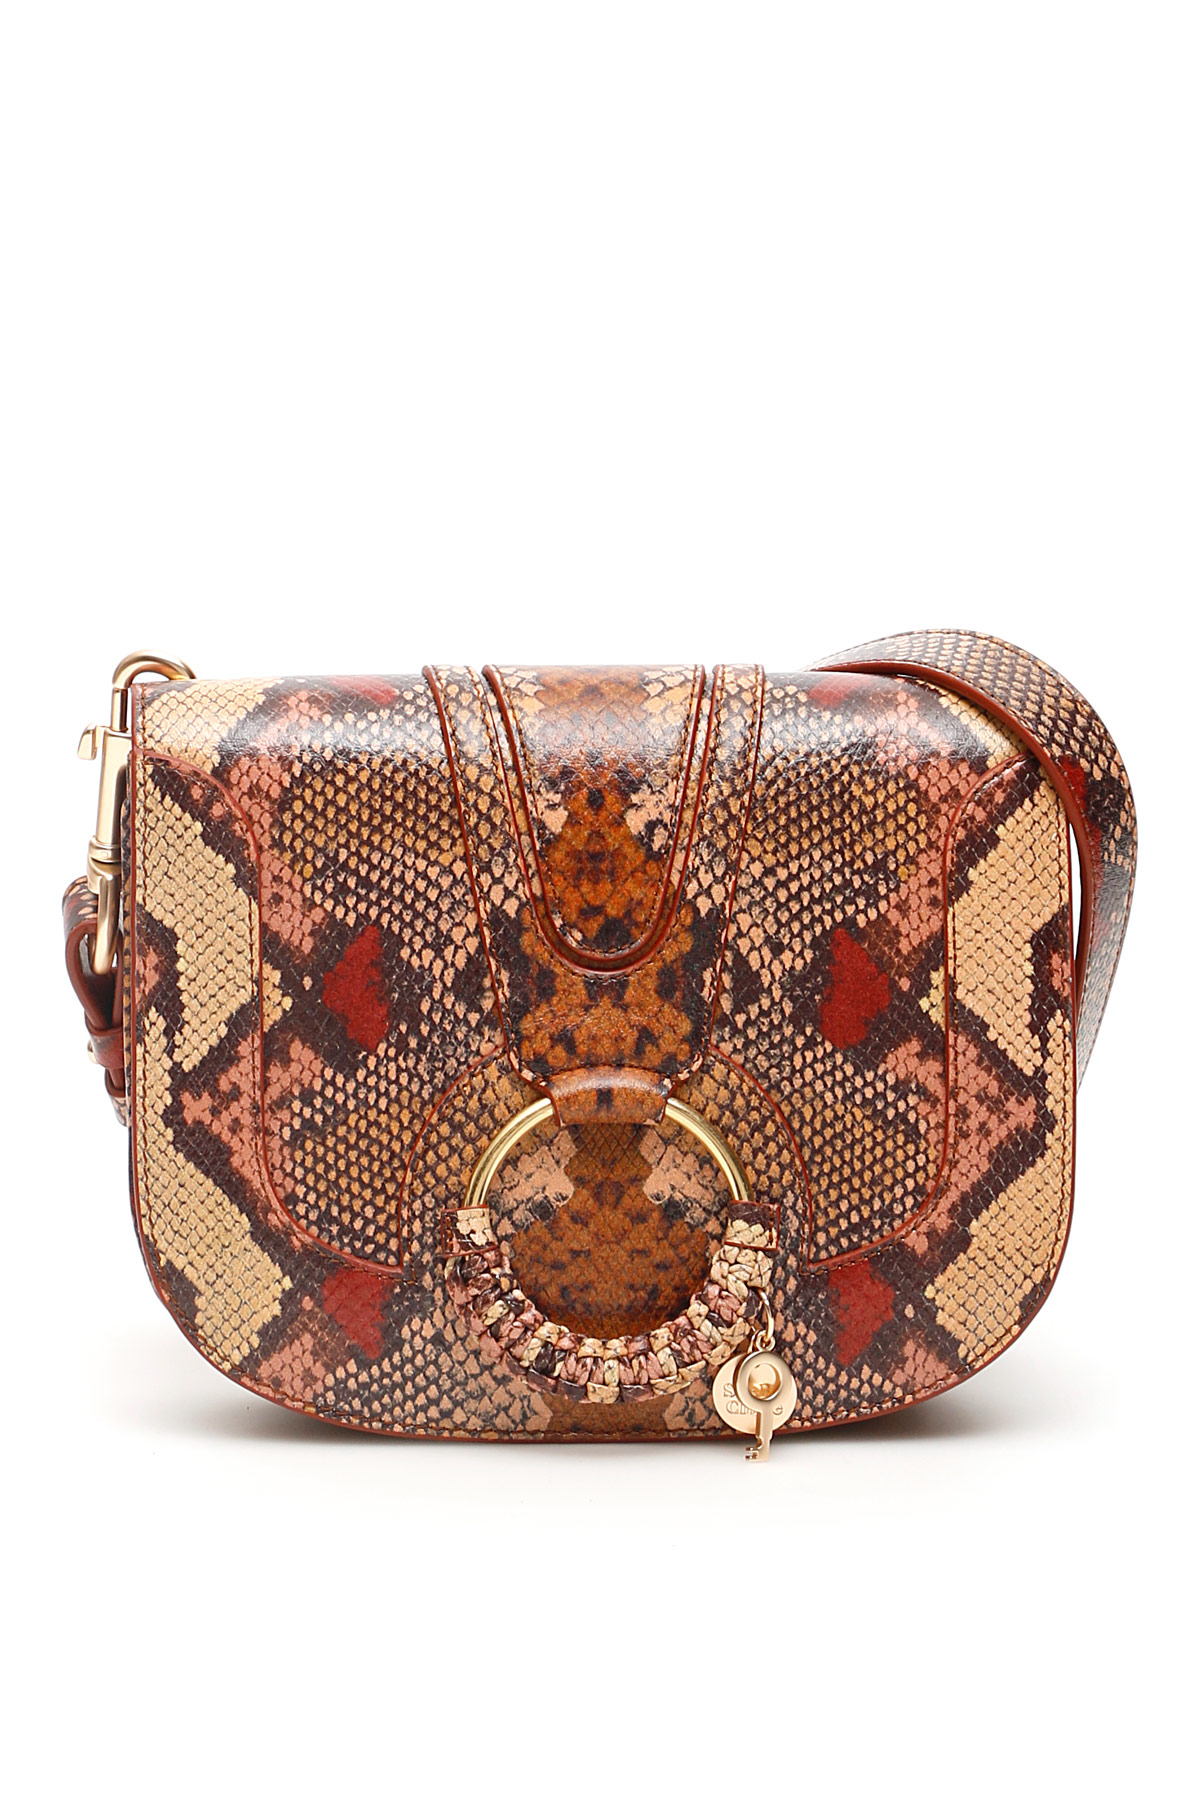 SEE BY CHLOE PYTHON PRINT HANA BAG OS Brown, Beige, Red Leather